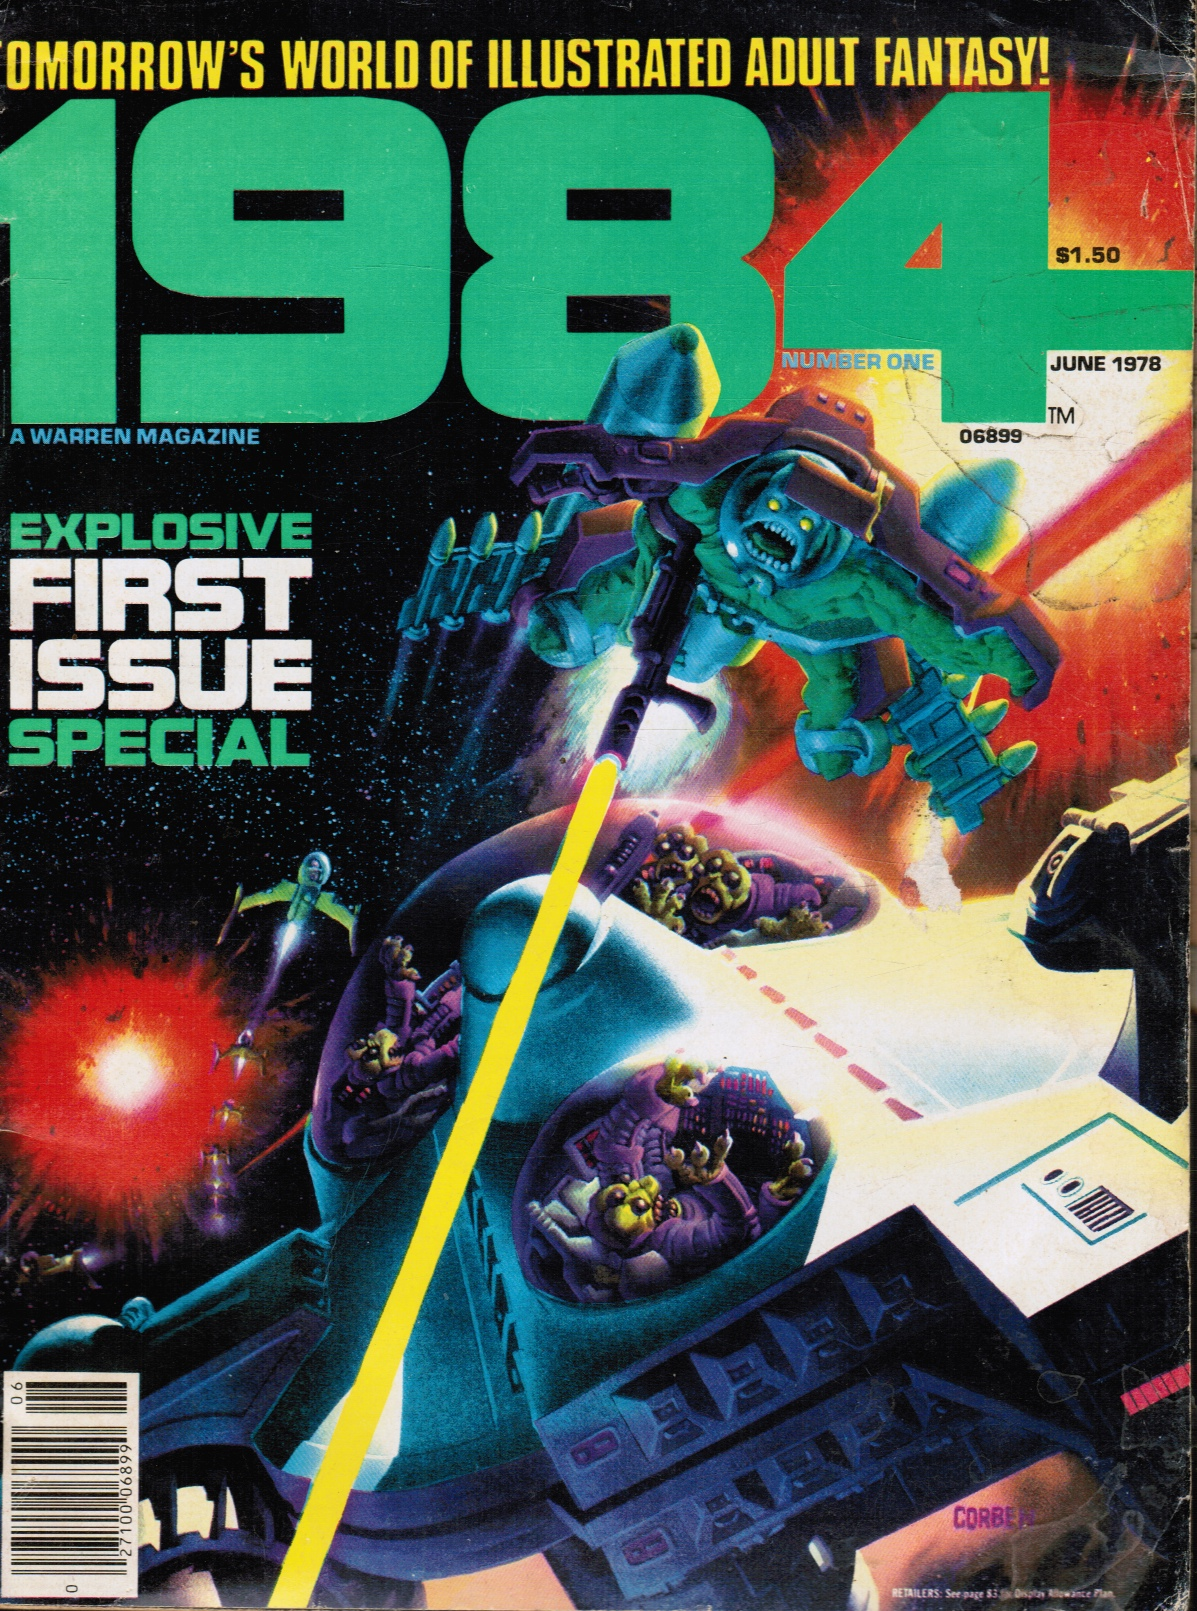 Image for 1984 Magazine: Issue #1 June 1978